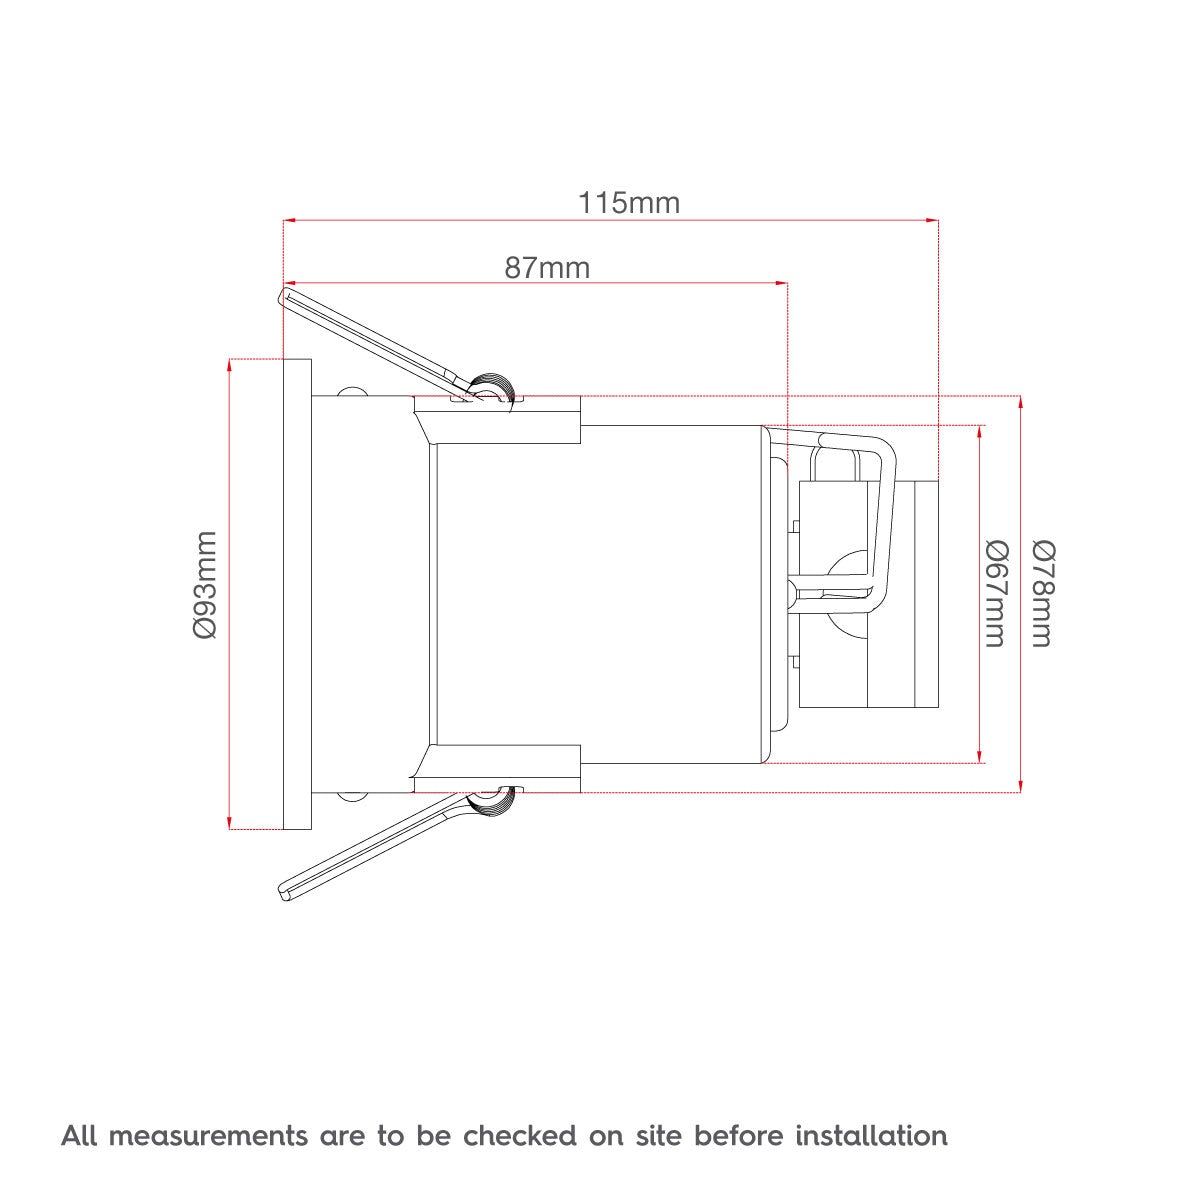 Dimensions for Adjustable fire rated bathroom downlight in chrome